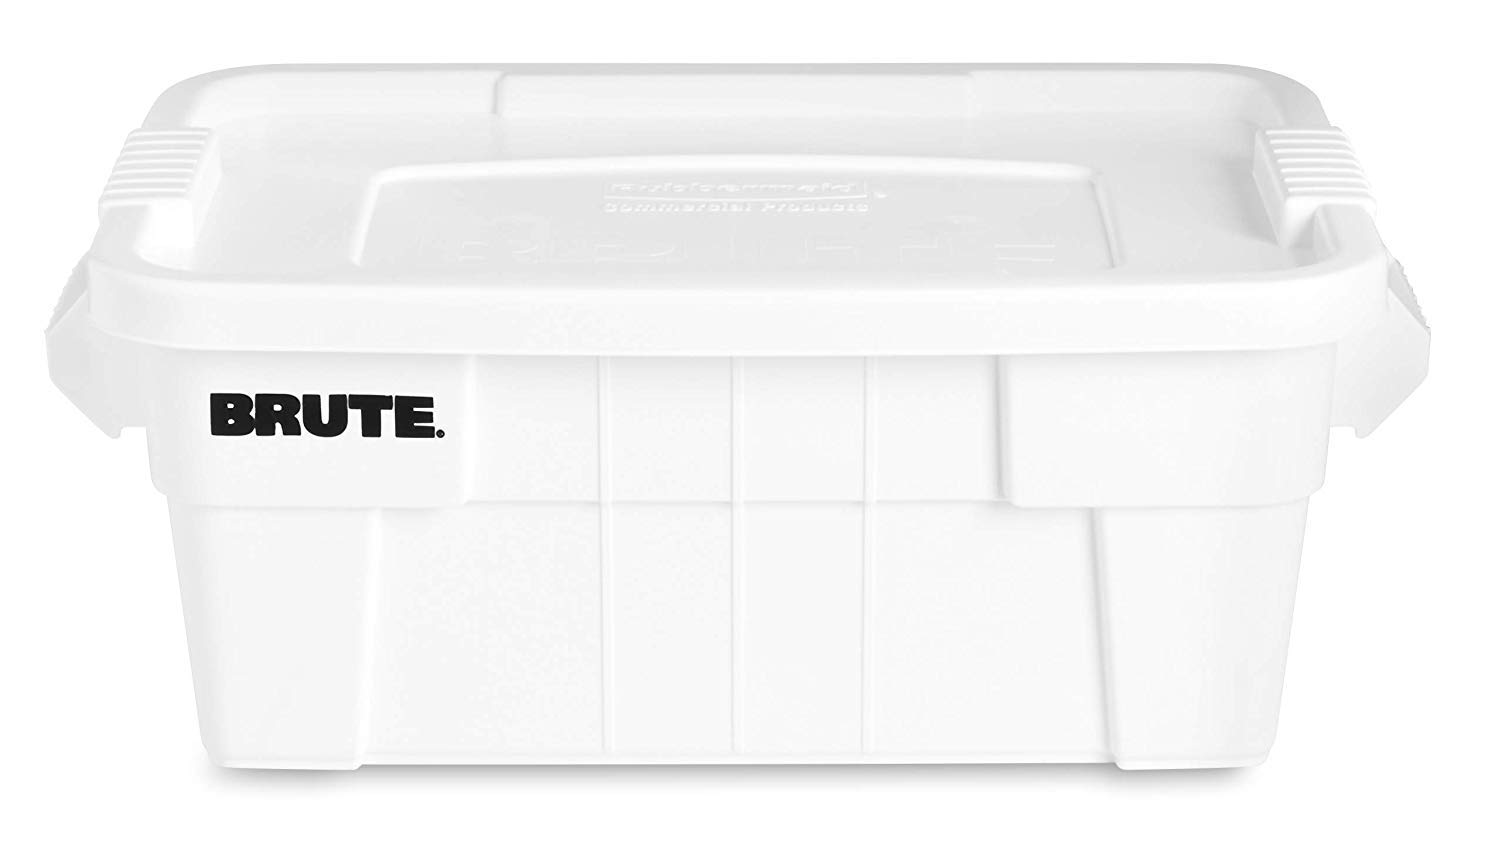 Rubbermaid 14 gal White Plastic Brute Tote with Lid - 27 7/8''L x 17 3/8''W x 10 11/16''D